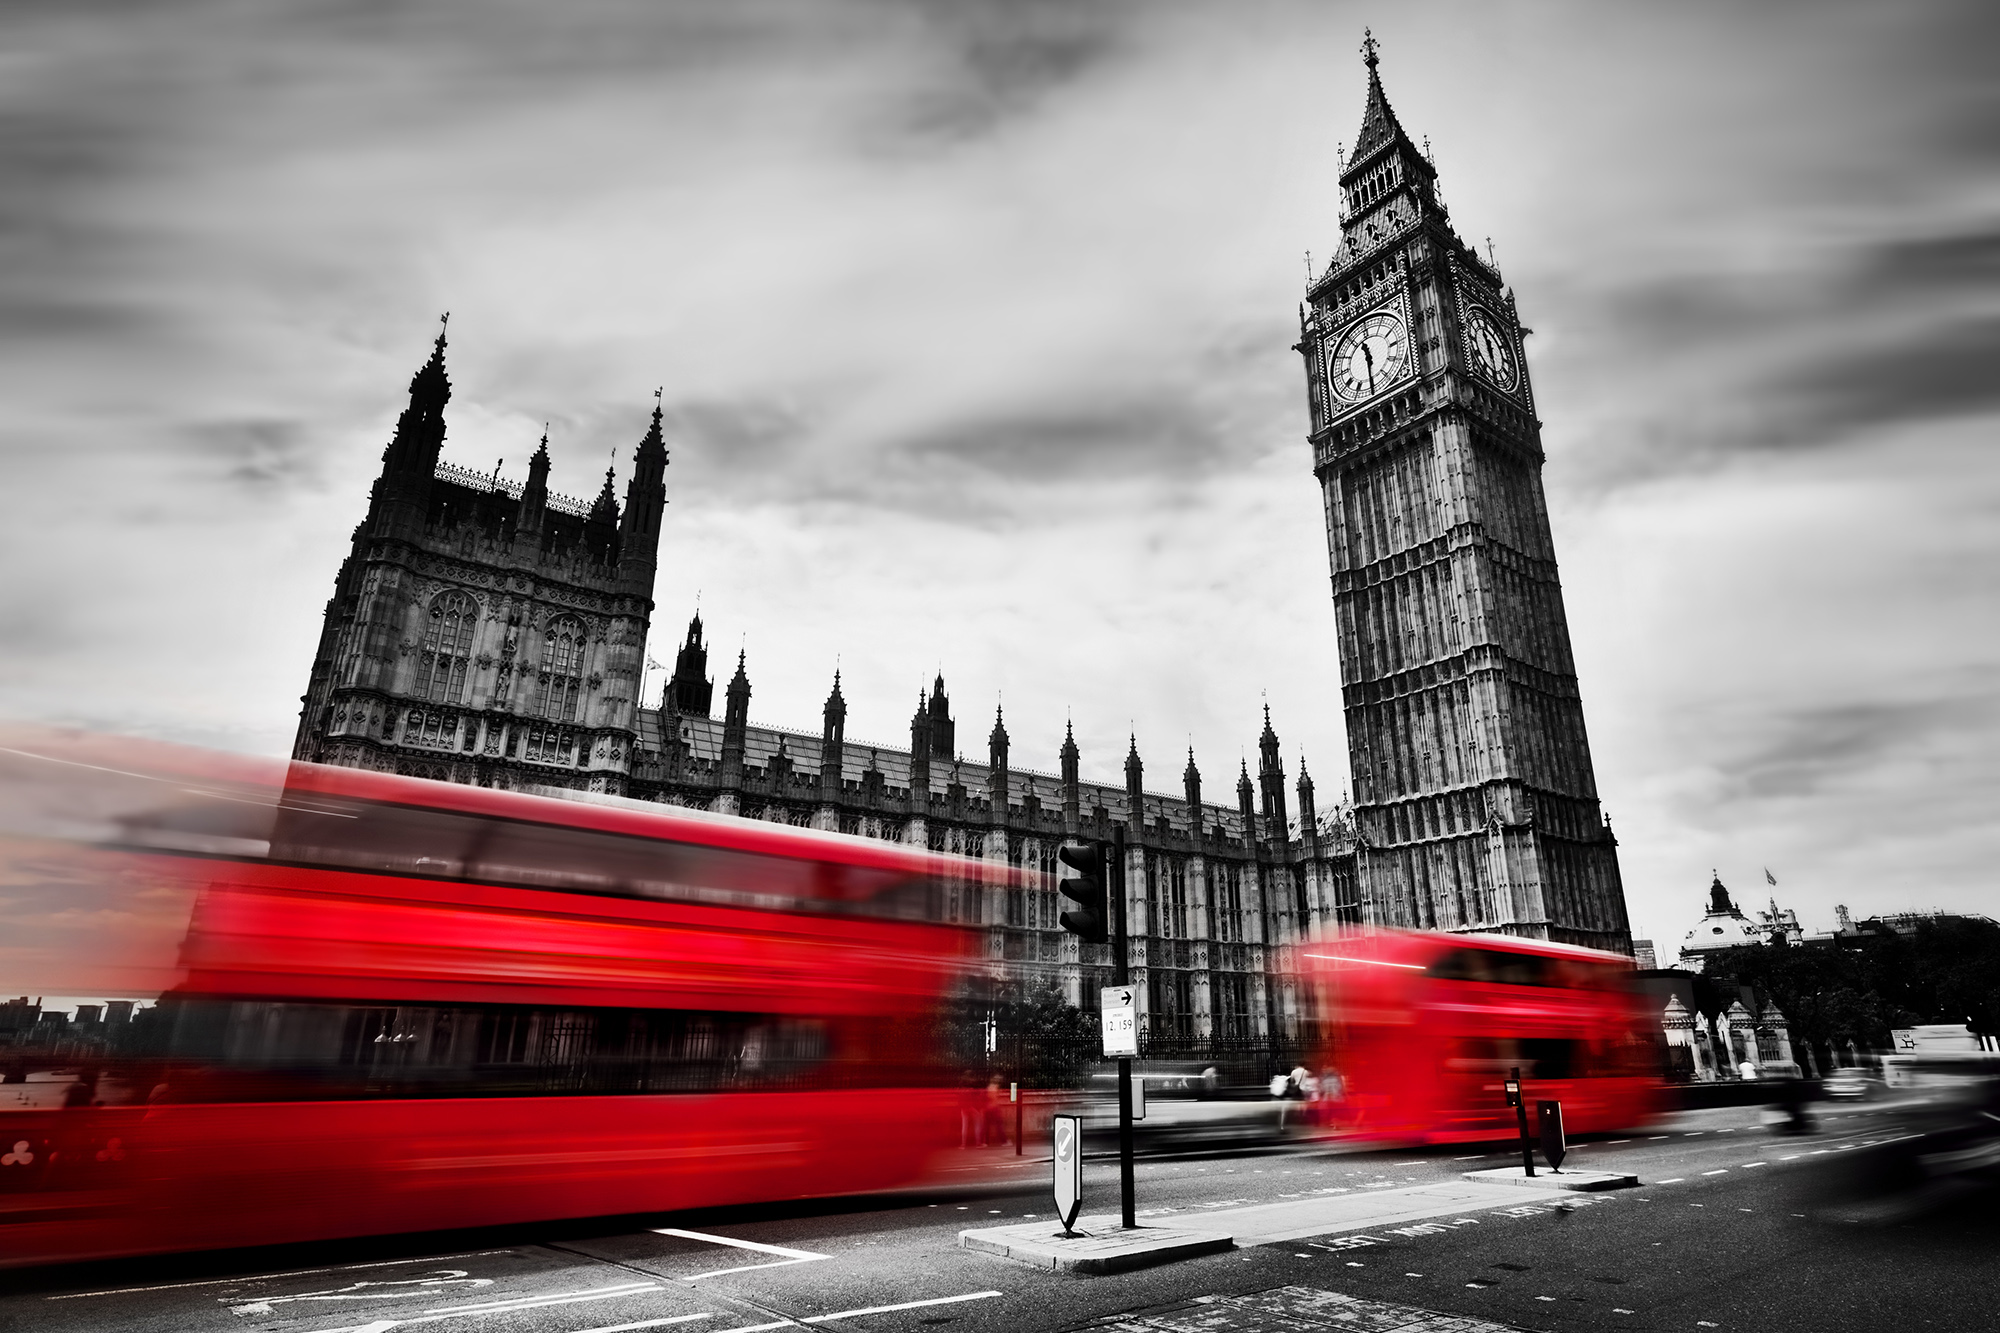 london bus red parliament colour splash bridge city